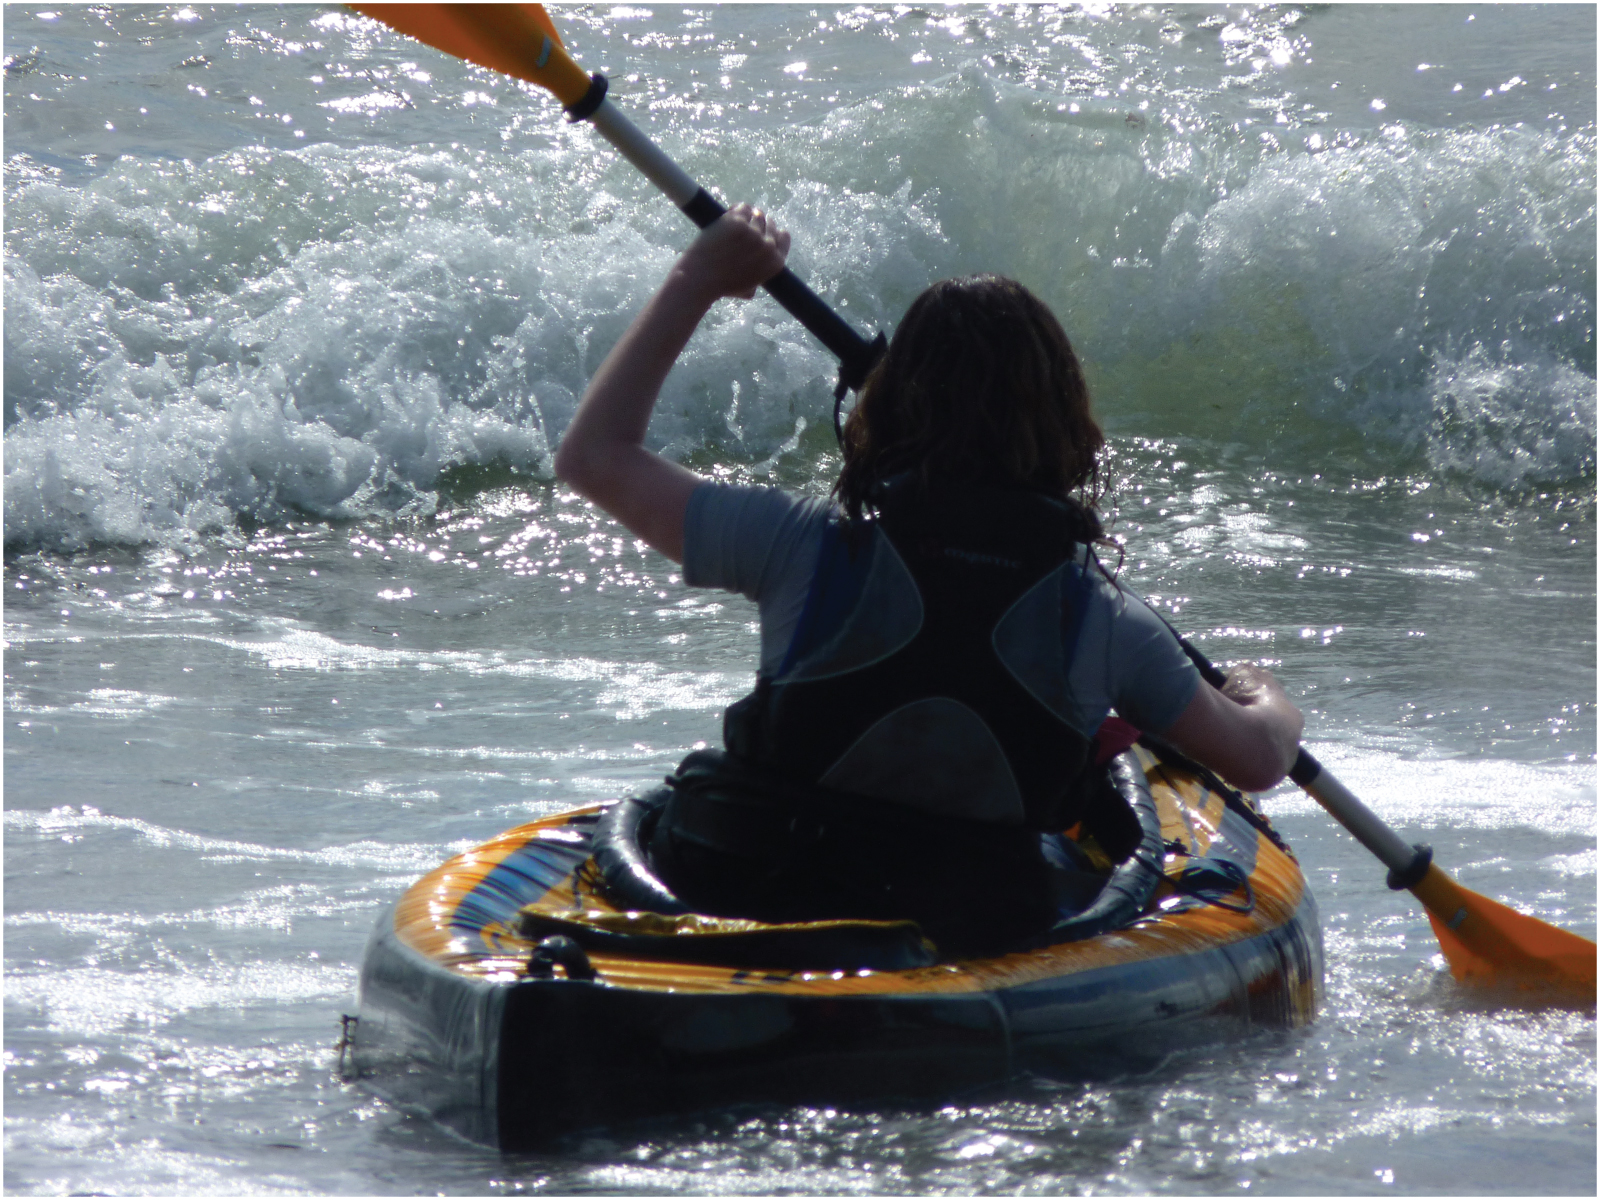 This picture shows a girl kayaking in the ocean.